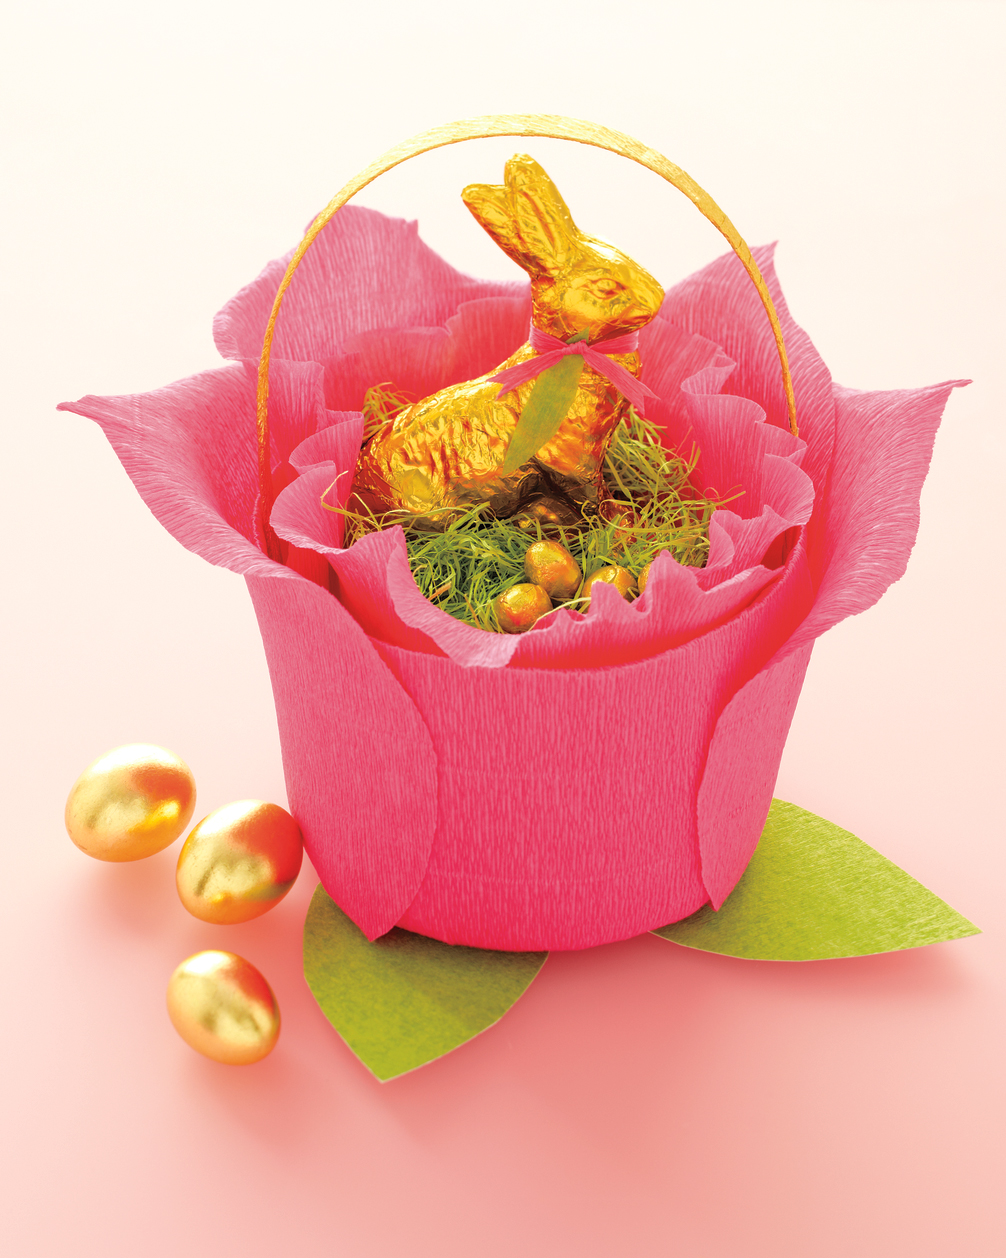 easter-baskets-flower-mld108275.jpg